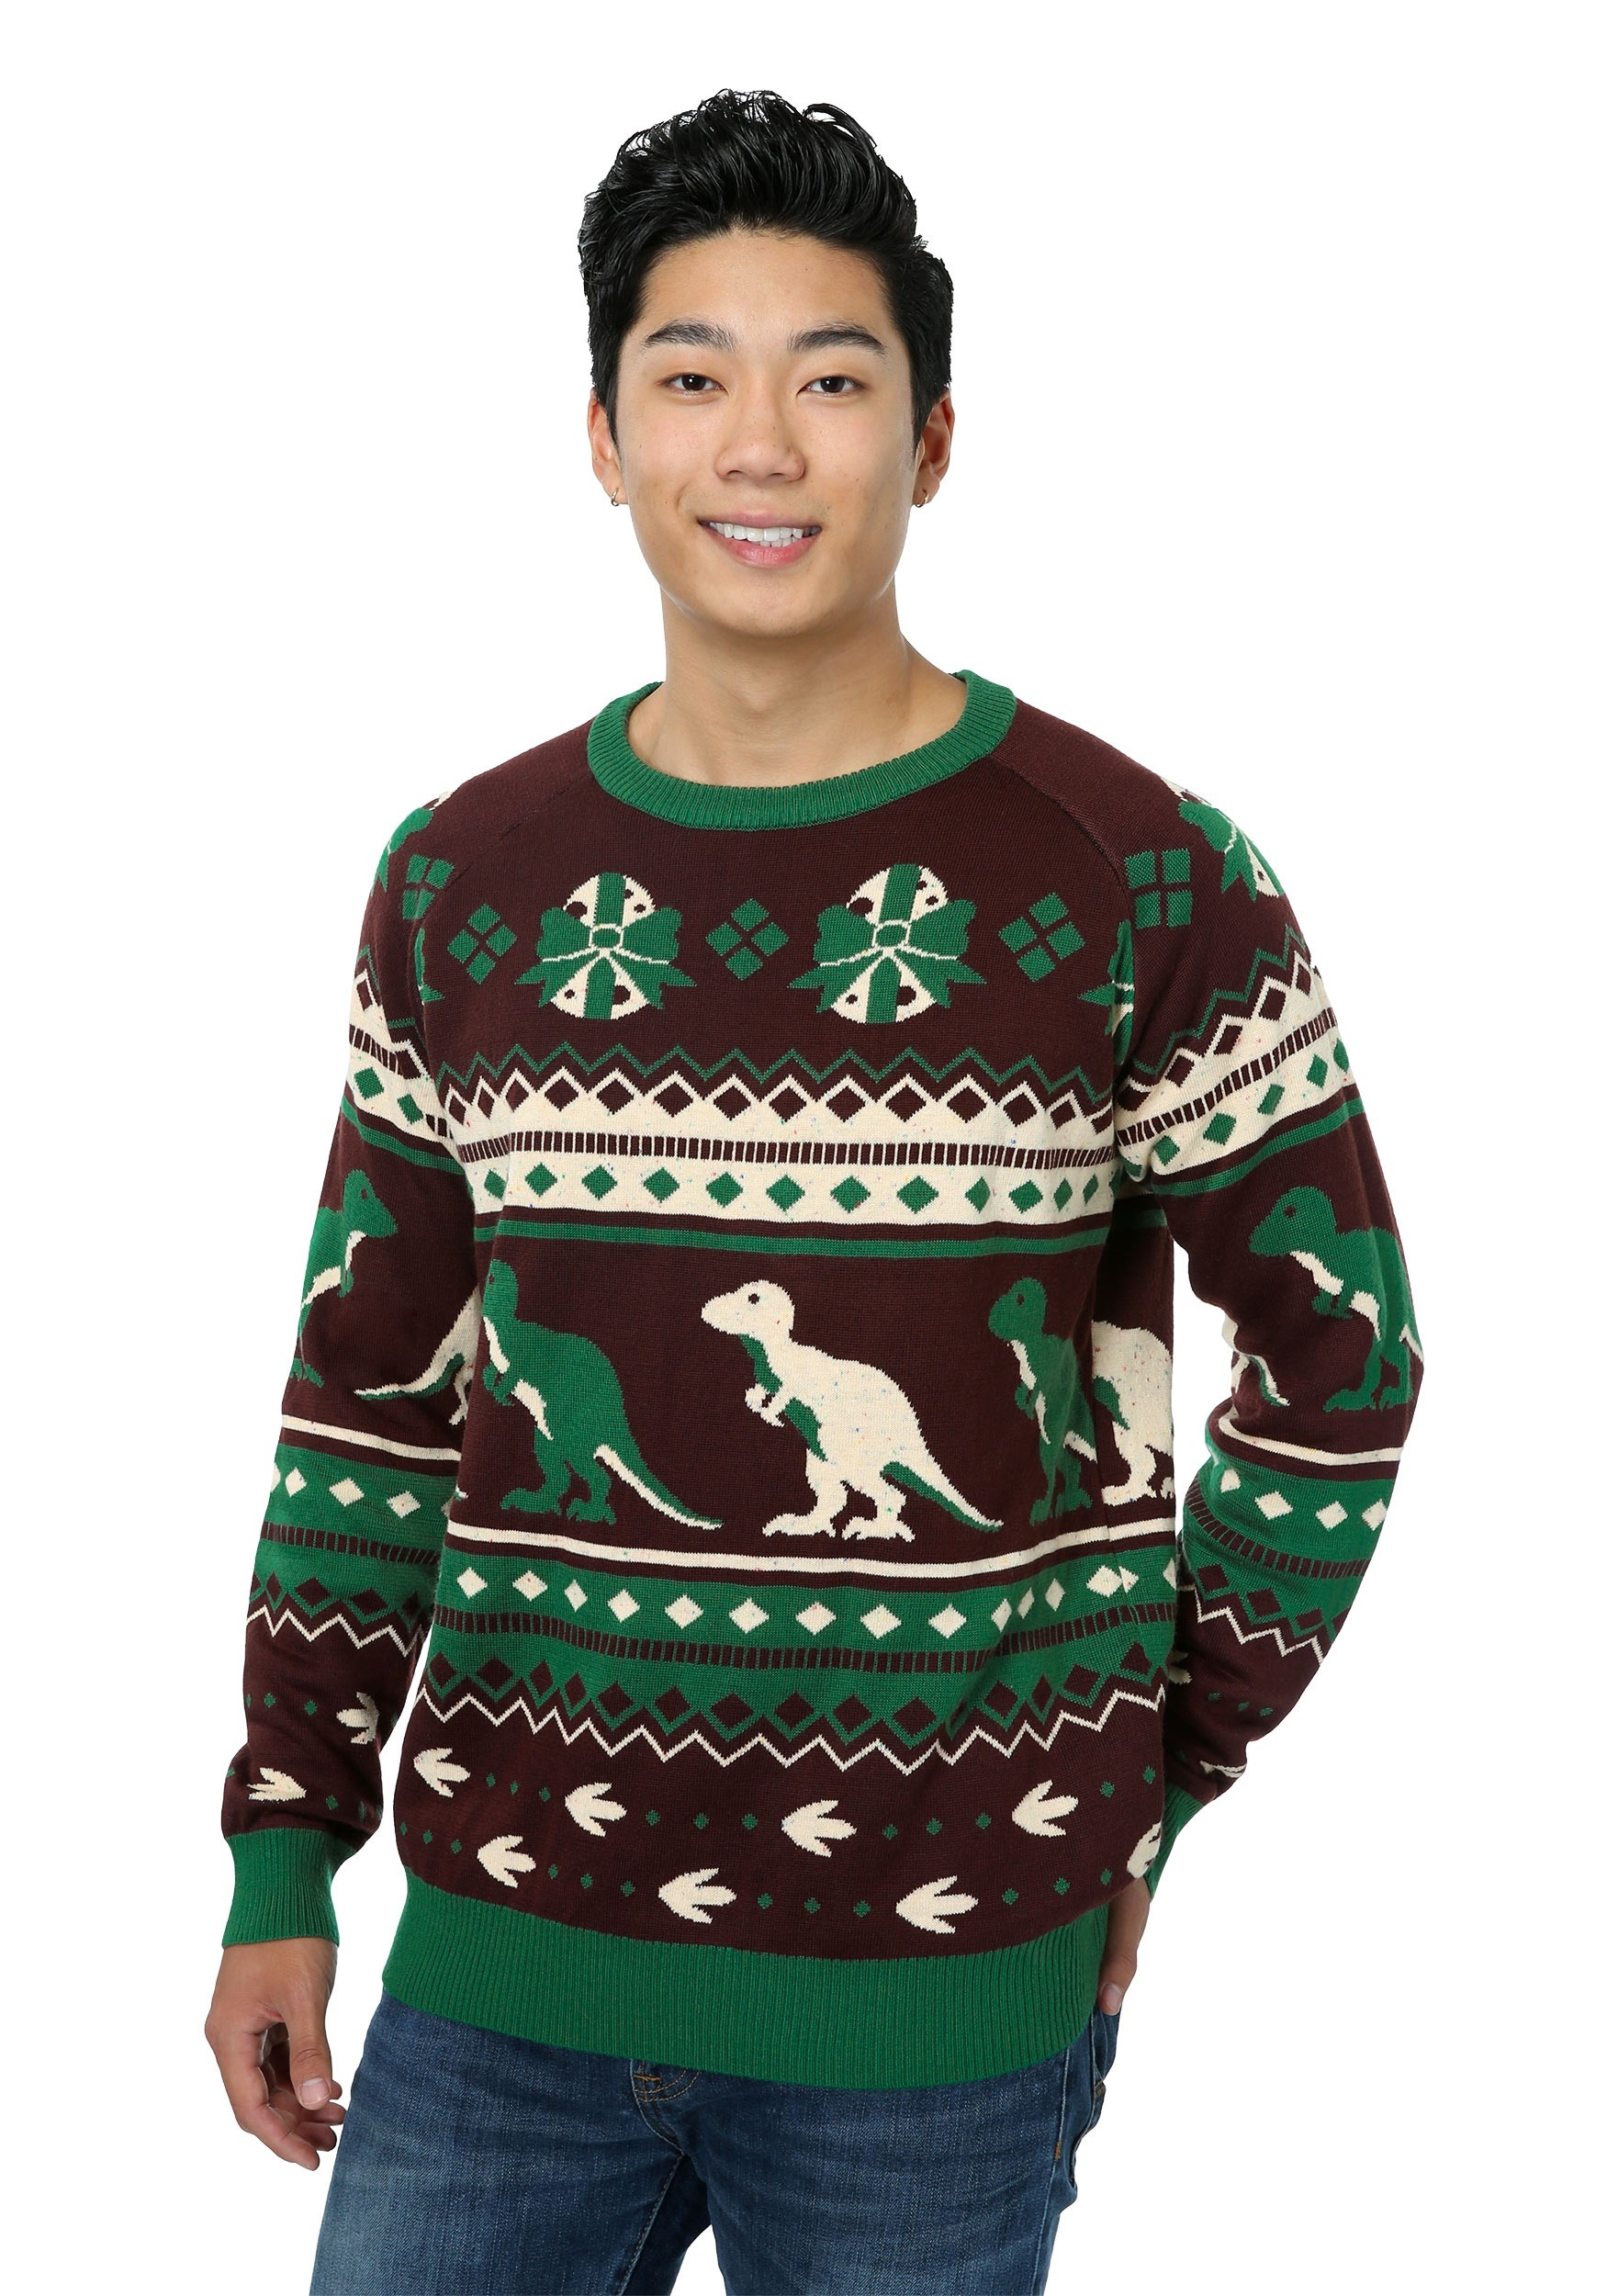 Christmas sweater with dinosaurs